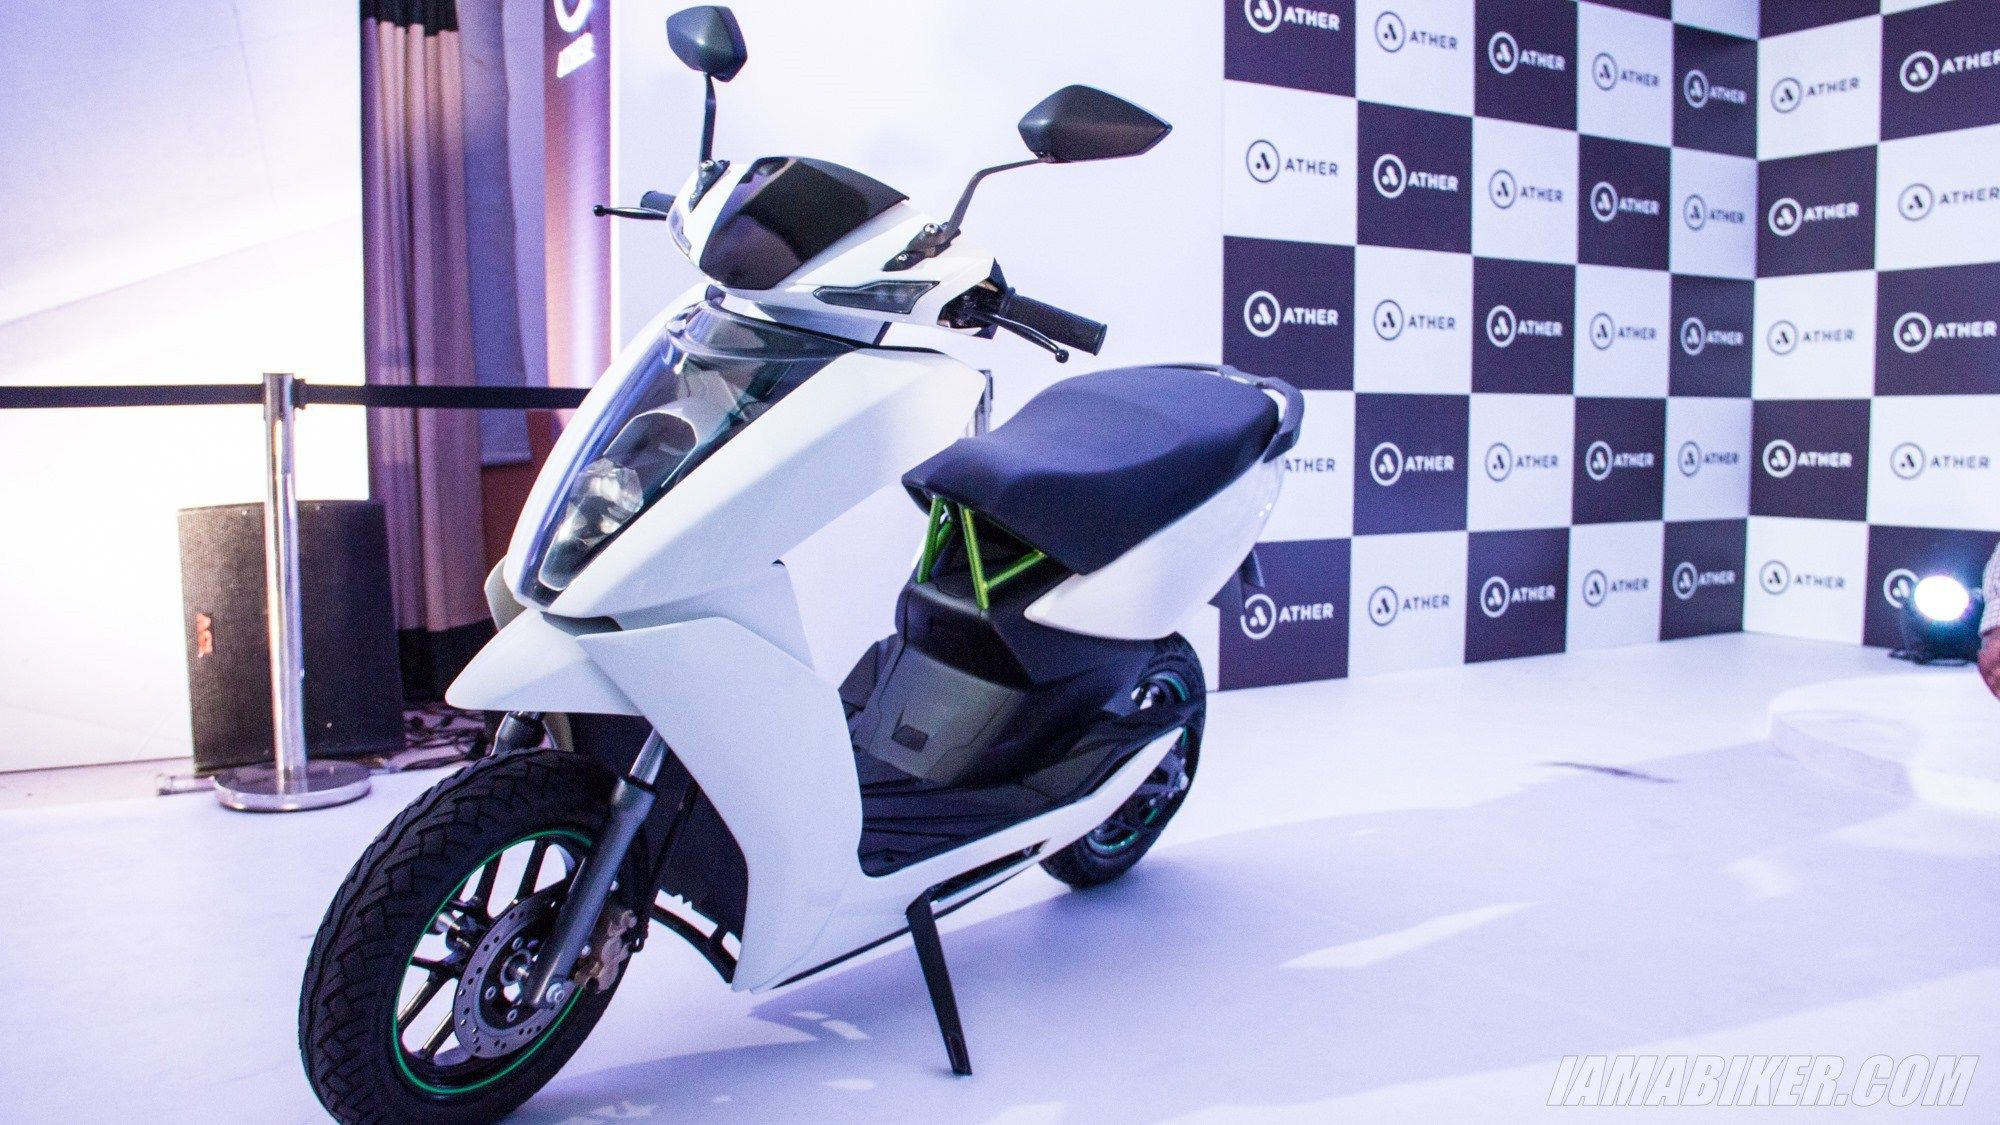 Ather S340 The Future Is Here Motorcycle News Motorcycle